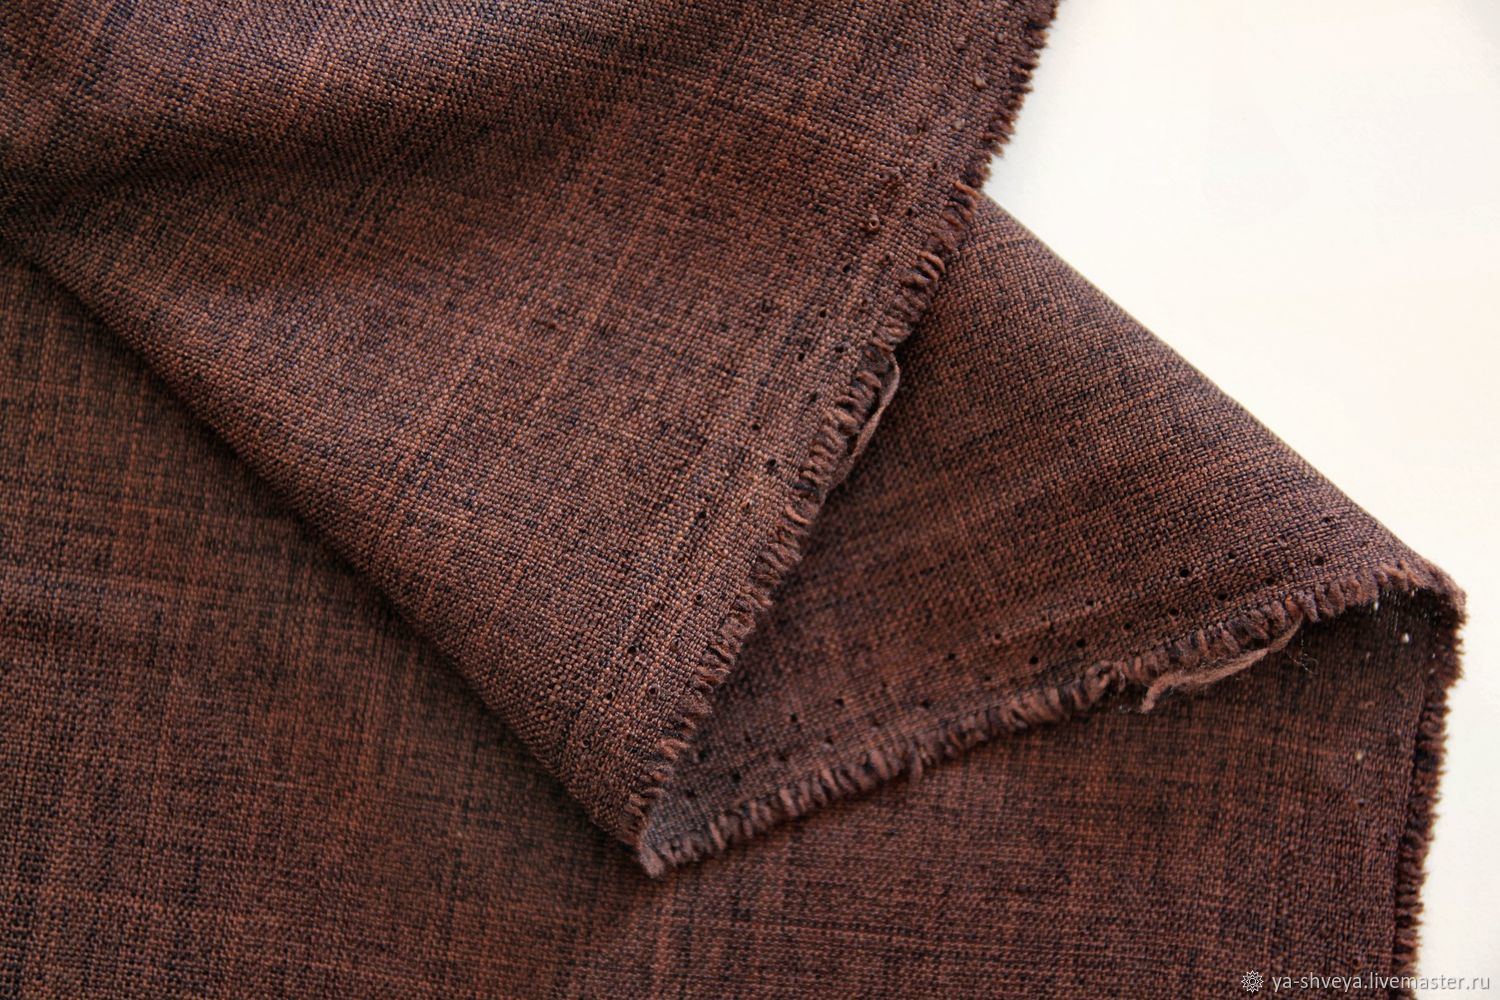 SOLID faux linen - CHOCOLATE, Fabric, Moscow,  Фото №1